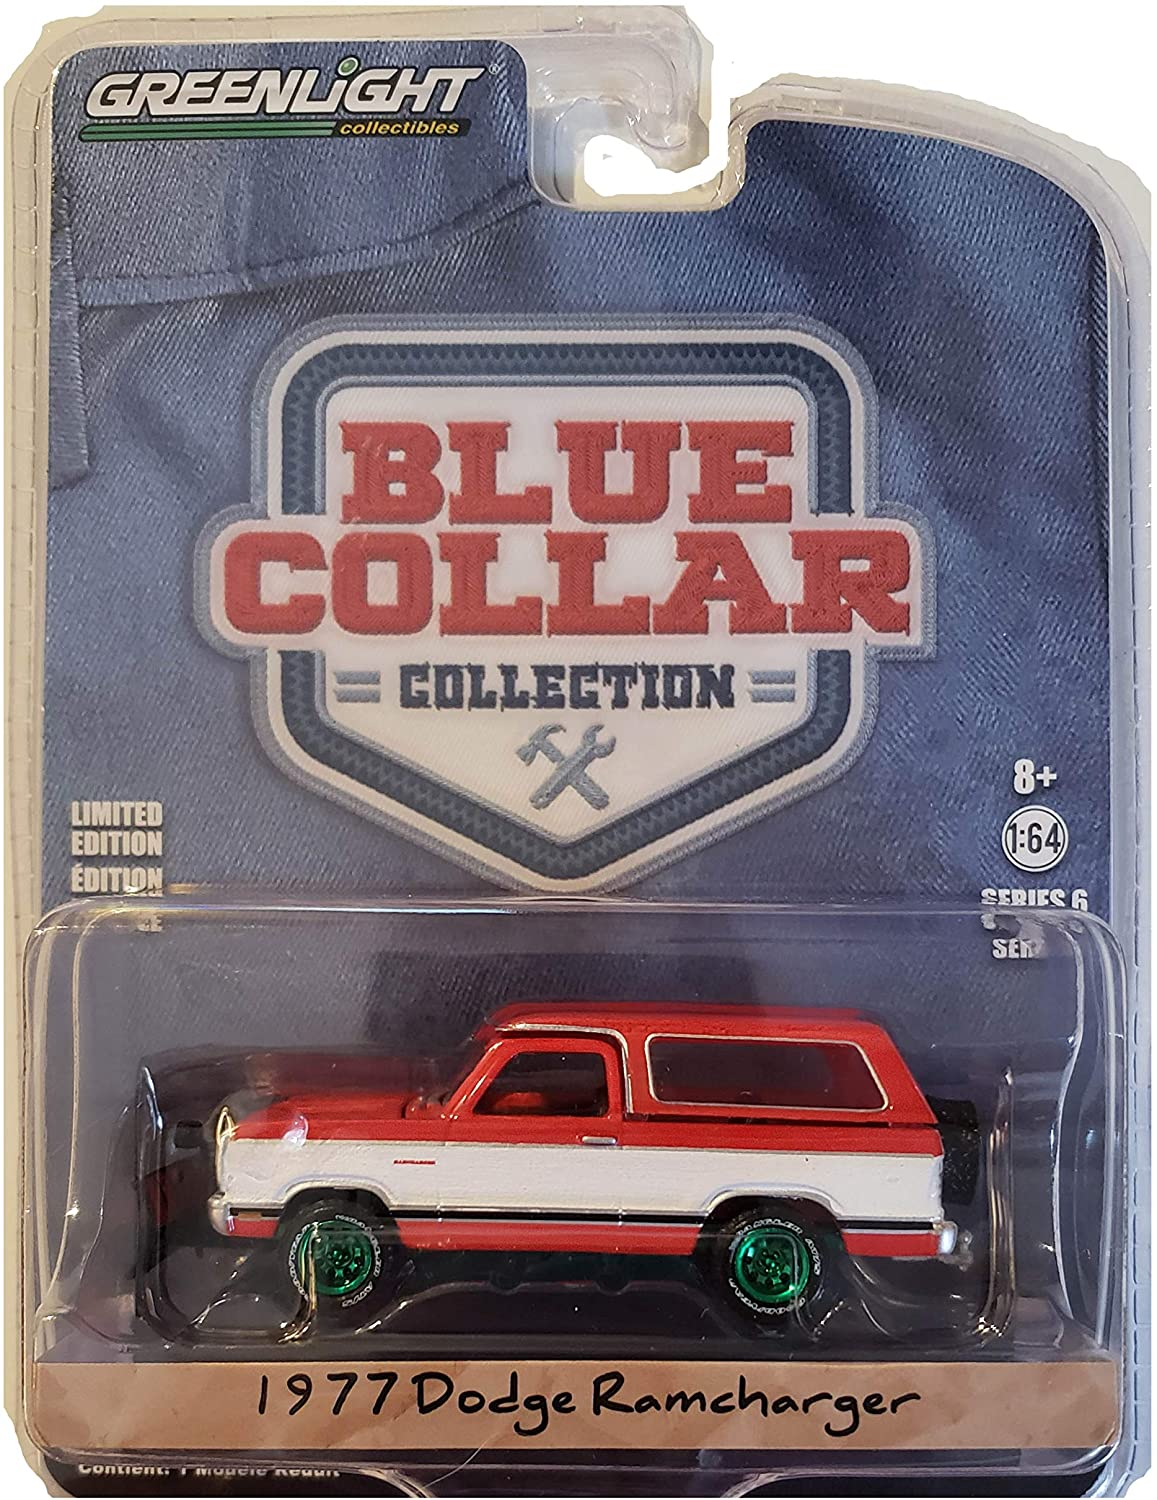 Green Machine 35140-C Blue Collar Collection Series 6-1977 Dodge Ramcharger with Snow Plow 1:64 Scale Greenlight Chase